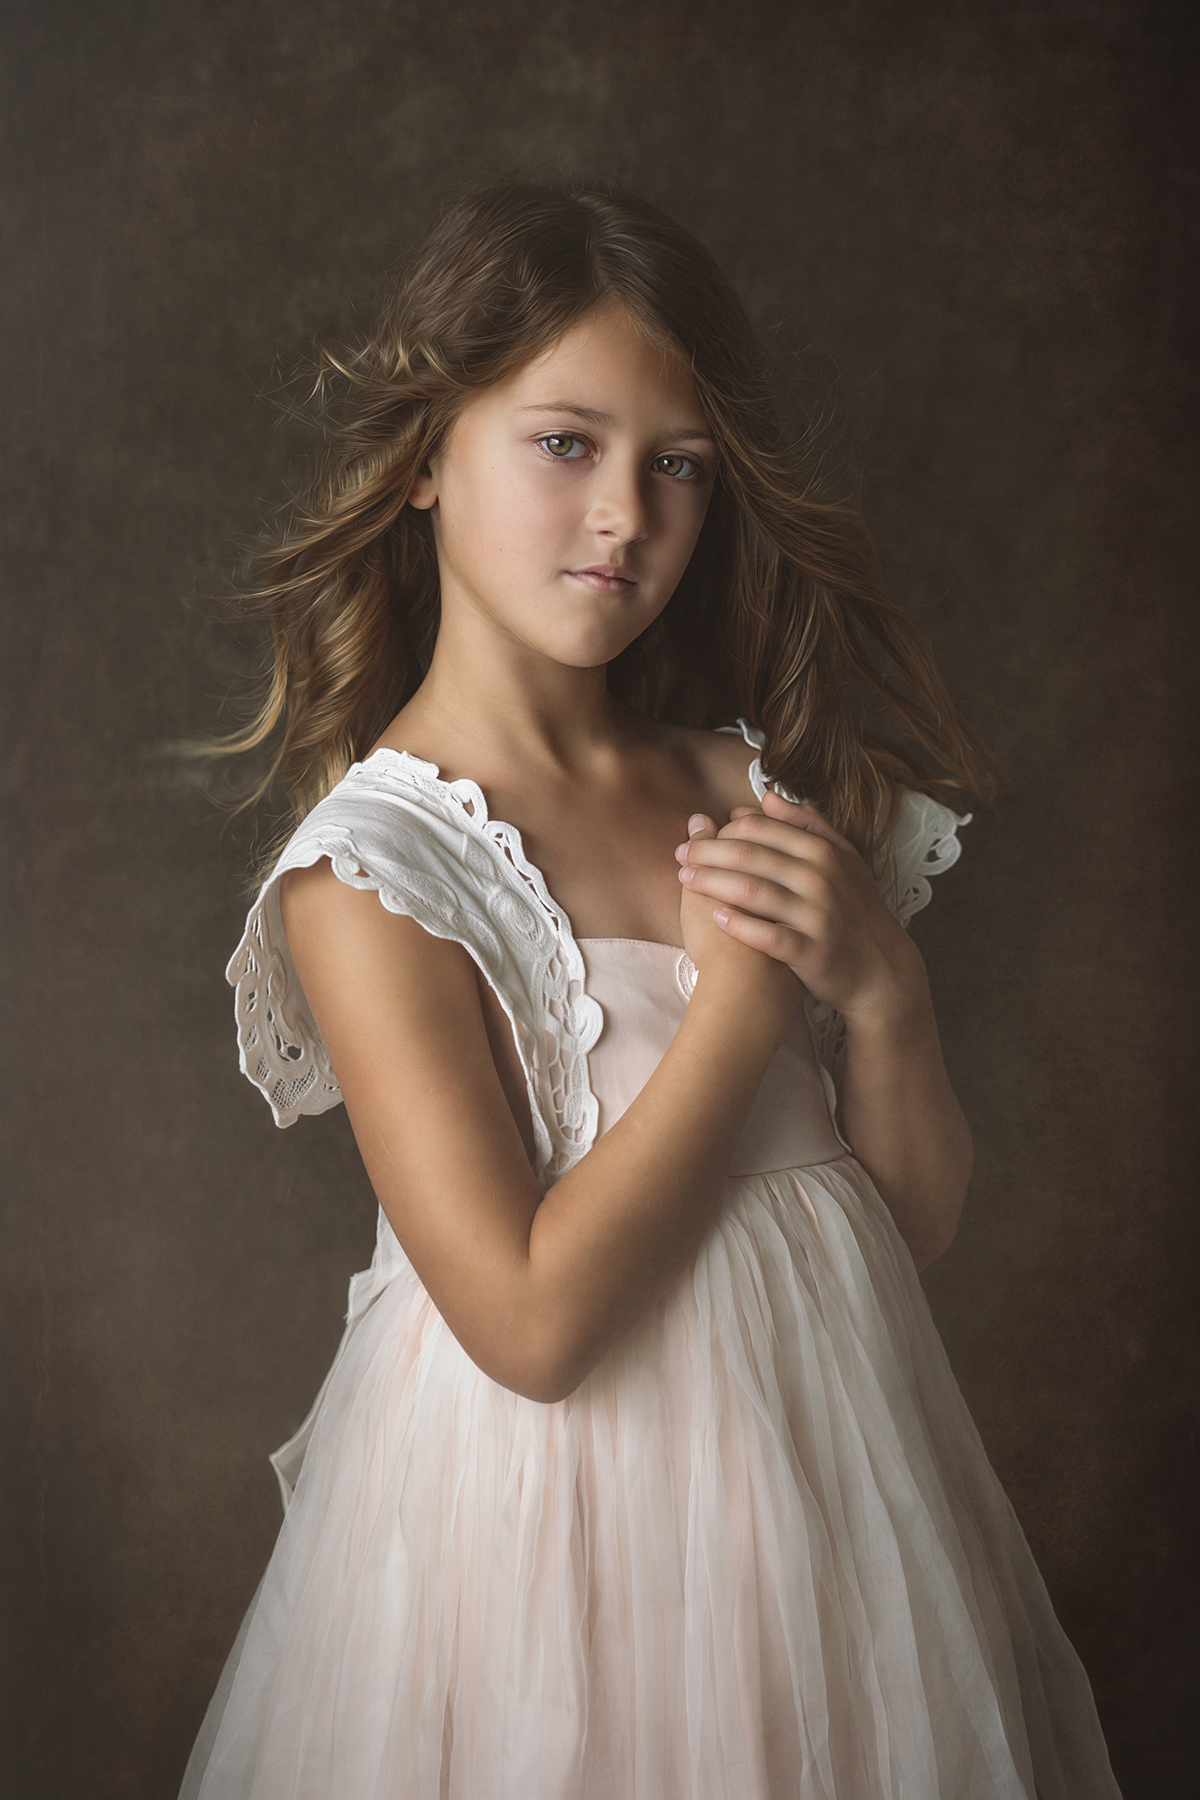 young girls portrait